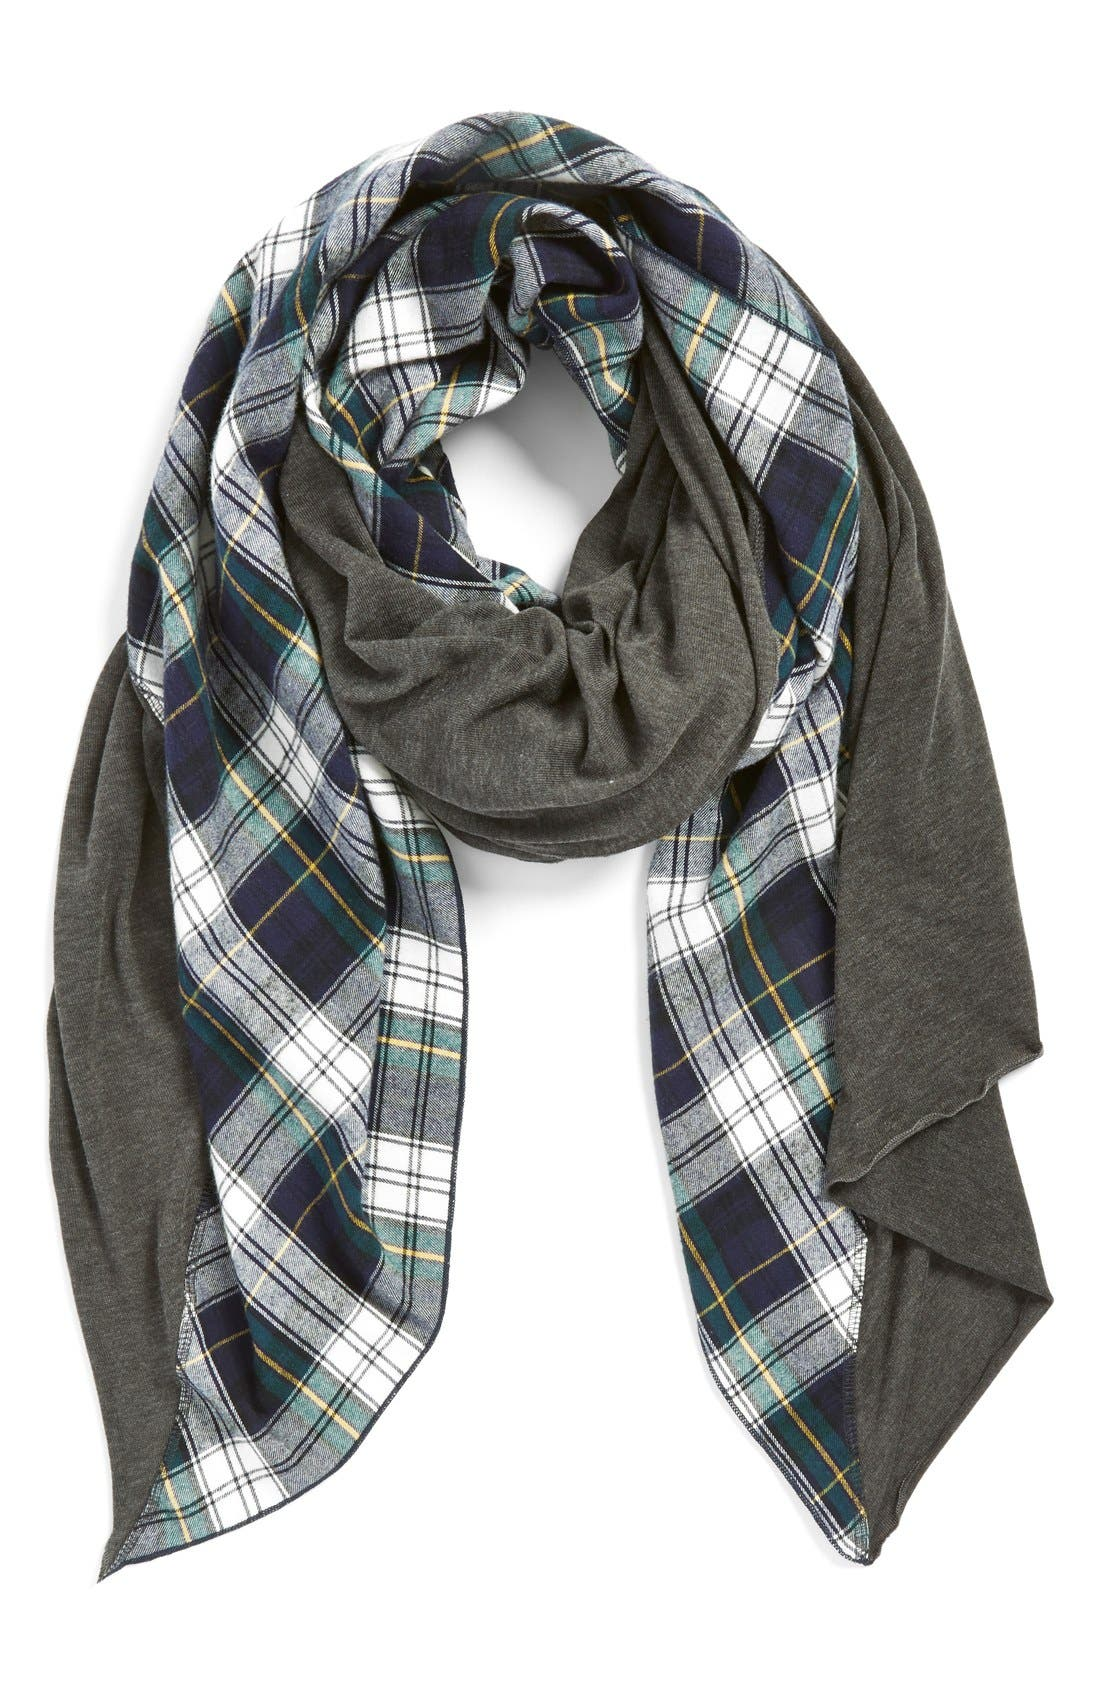 Alternate Image 1 Selected - Donni Charm 'Tartan Diagonal' Blanket Scarf